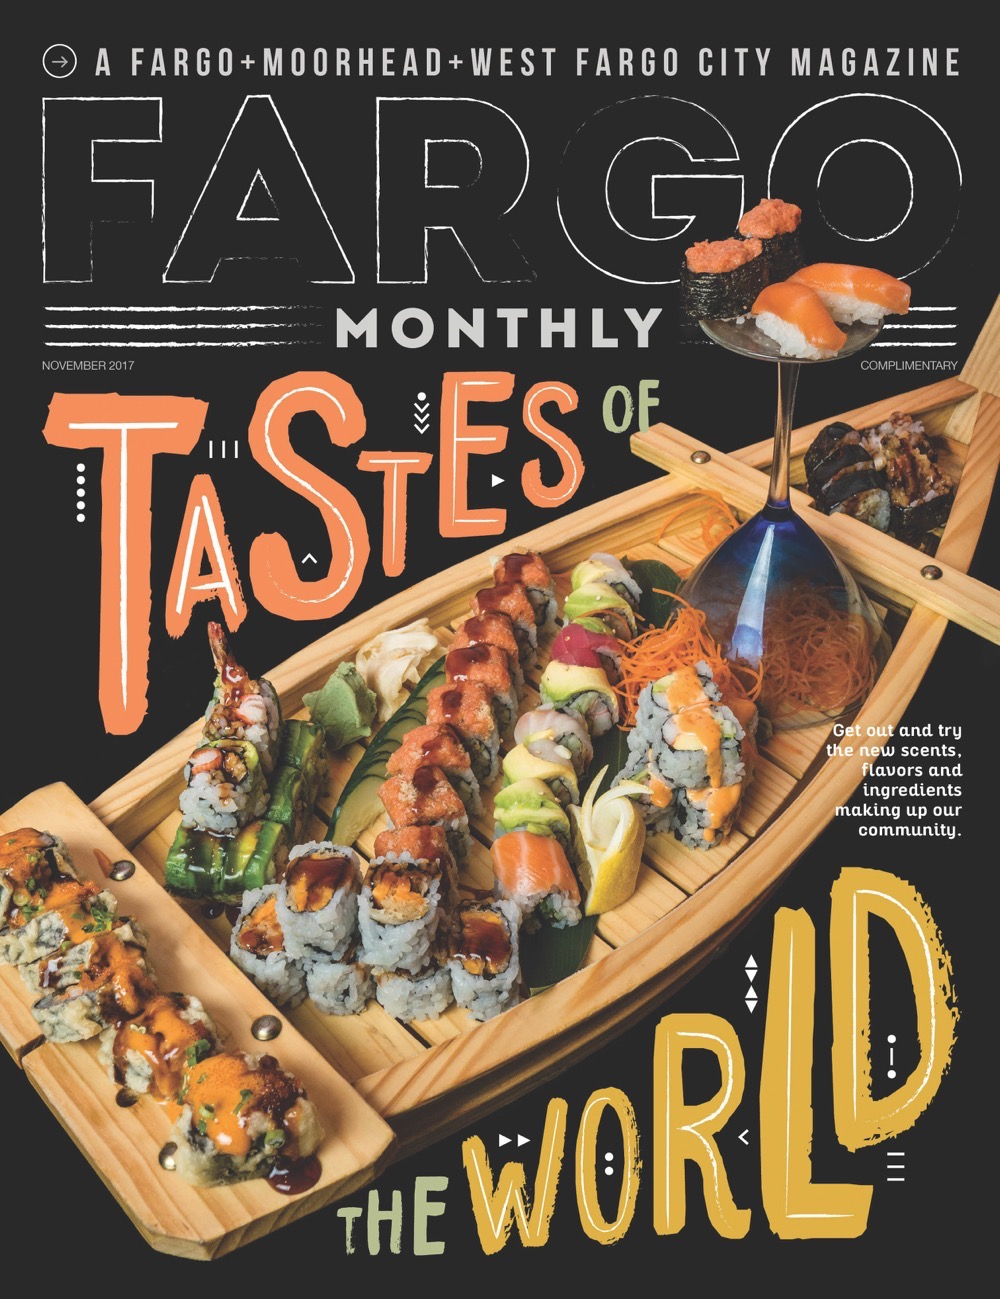 Fargo Monthly Tastes of the World